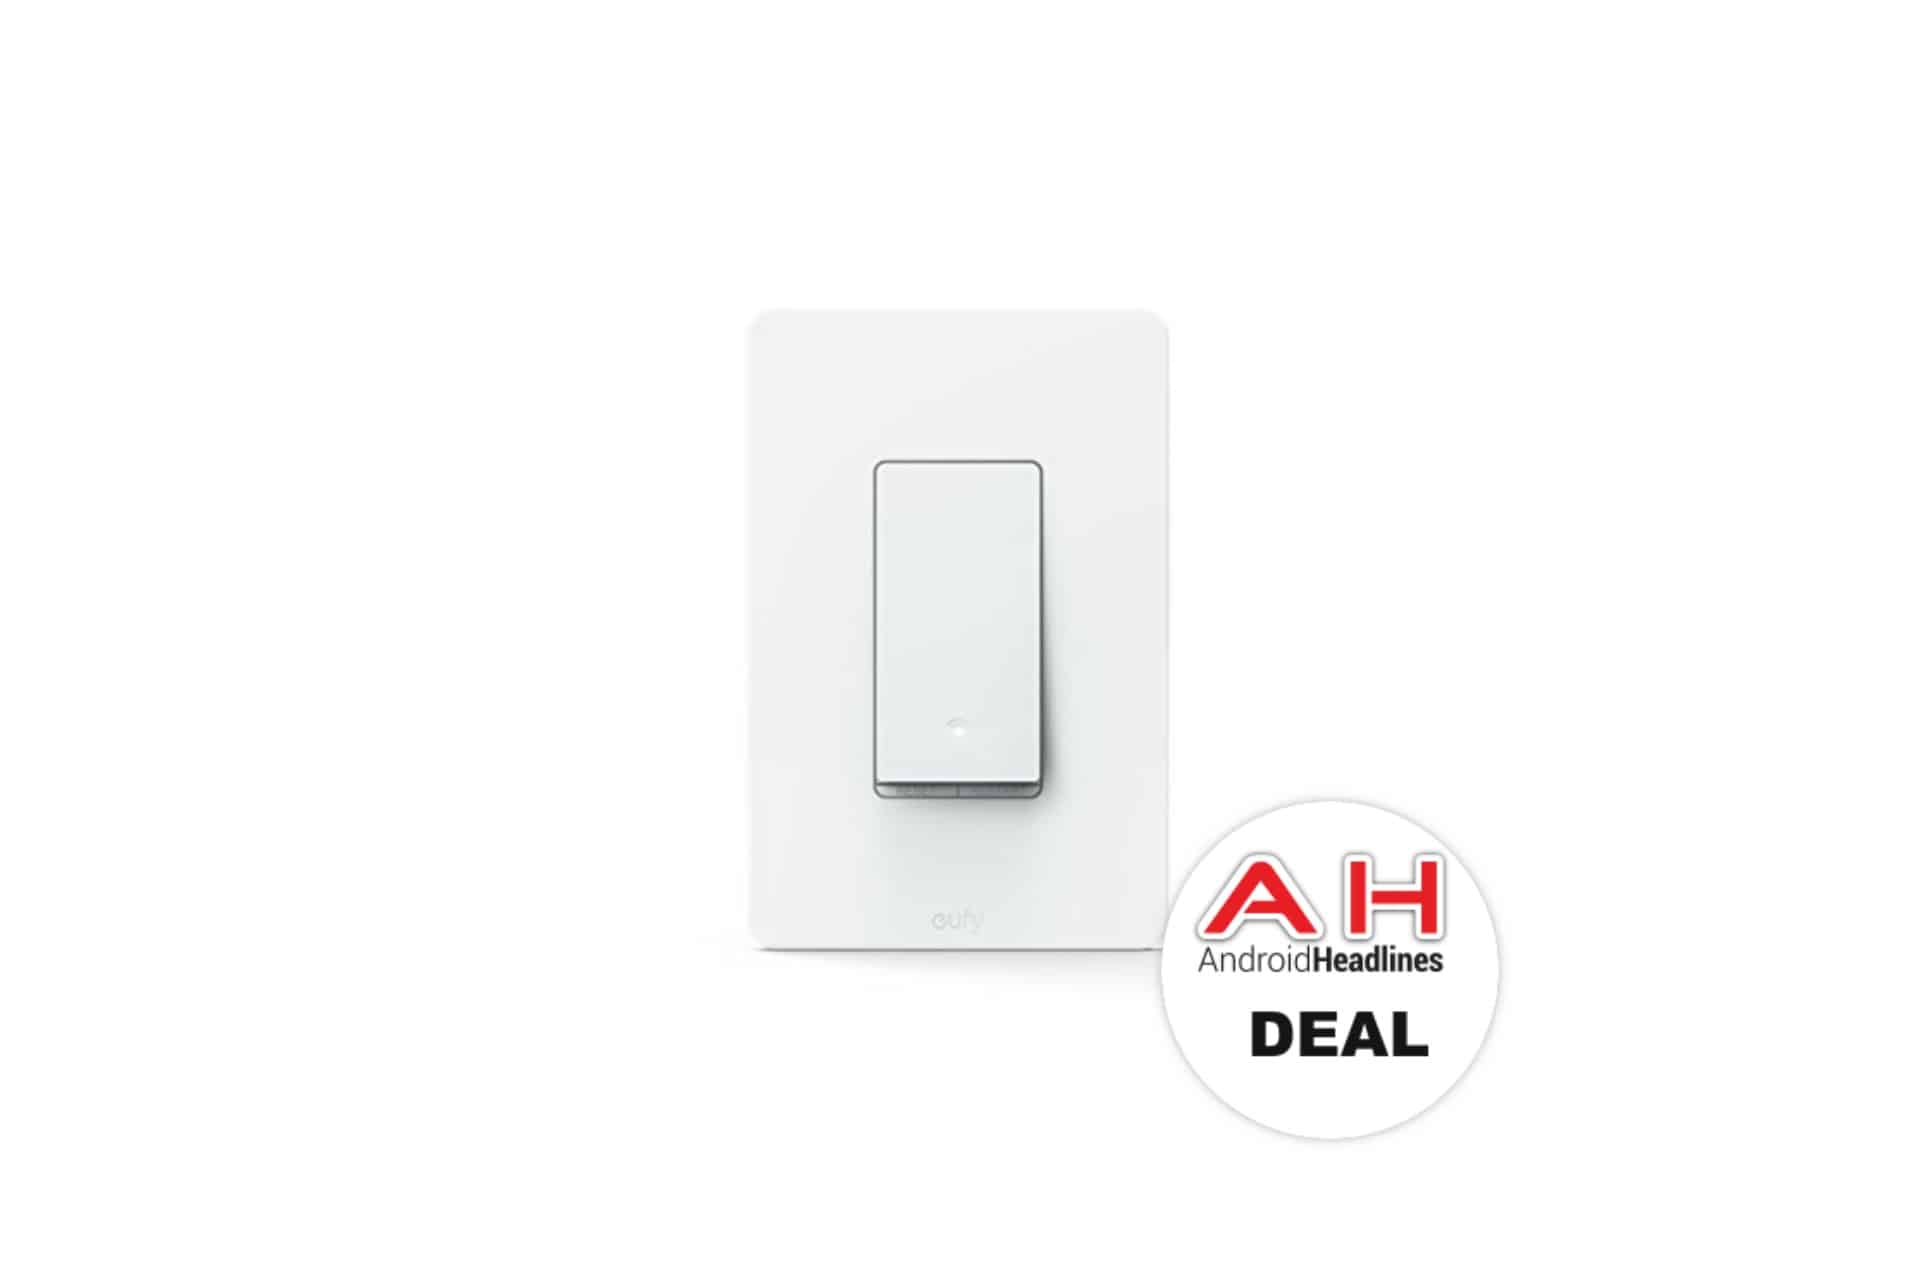 deal eufy smart switch works with amazon alexa for 25 3 23 18 android news. Black Bedroom Furniture Sets. Home Design Ideas